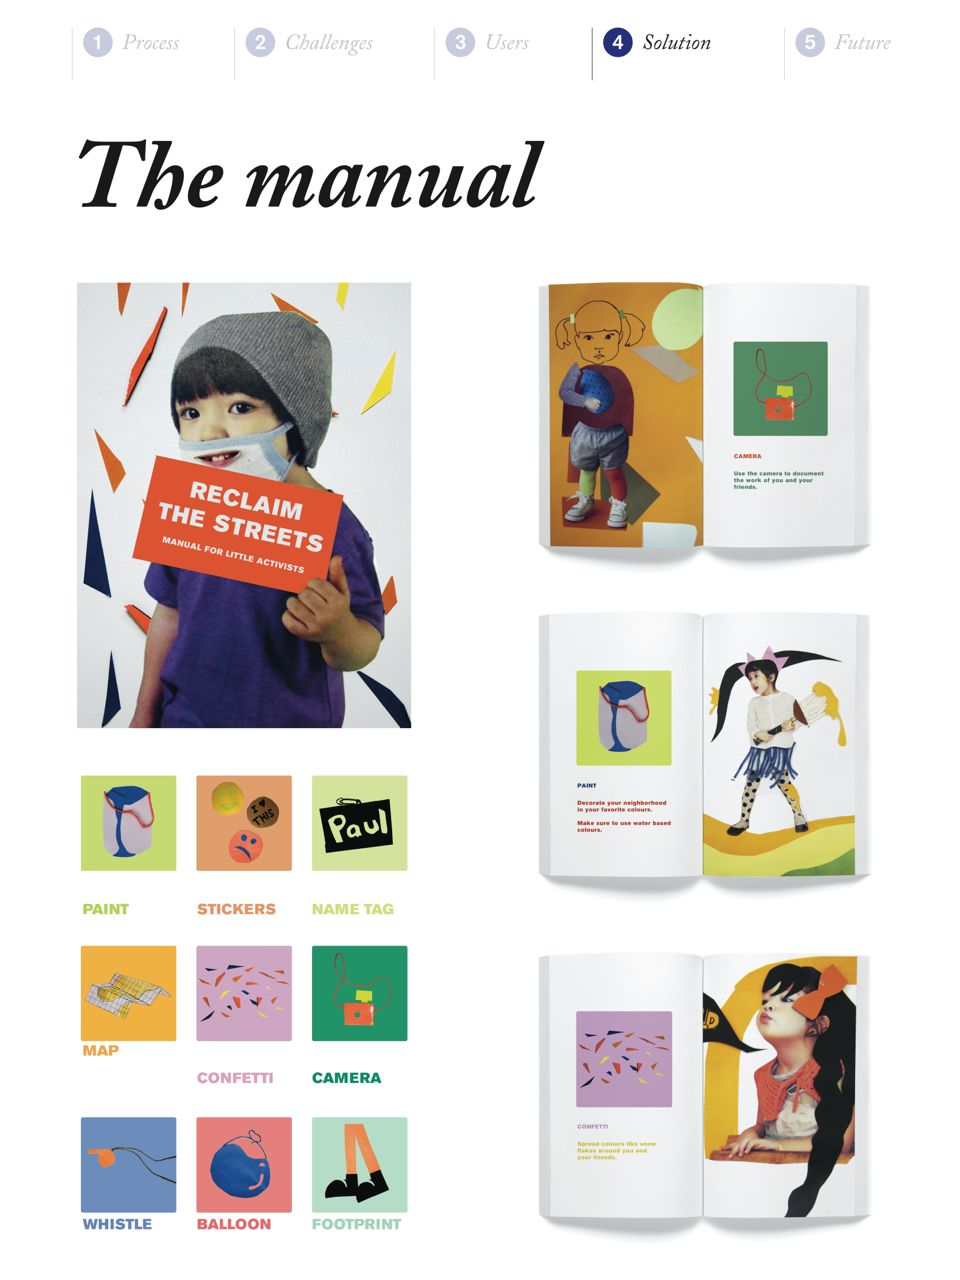 The Little Activists manual includes guidelines on how to use the tools.